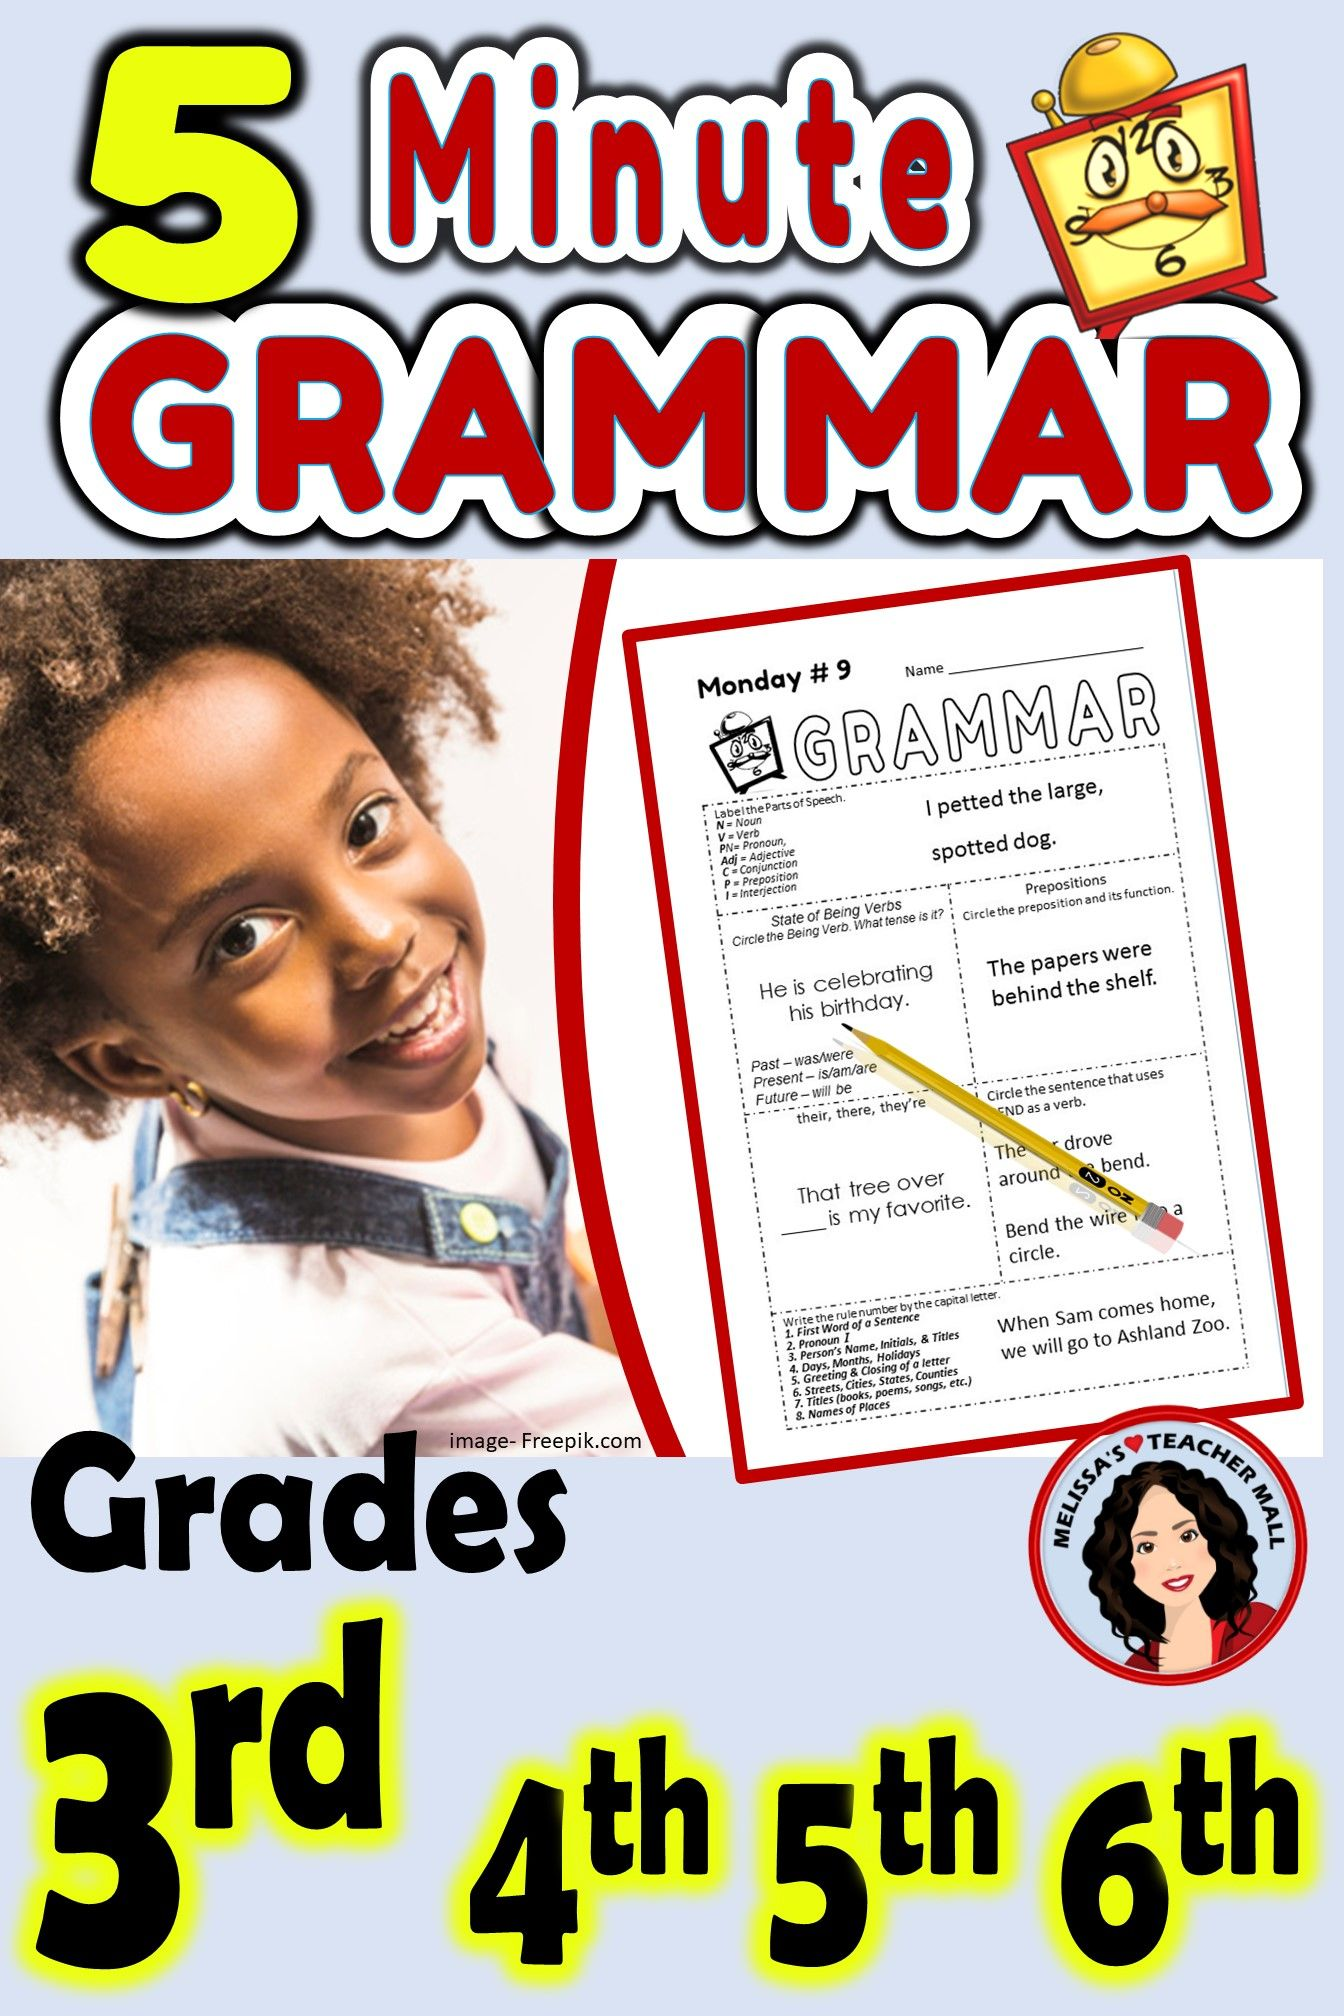 5 Minute Grammar Daily Grammar Worksheets 3rd Grade